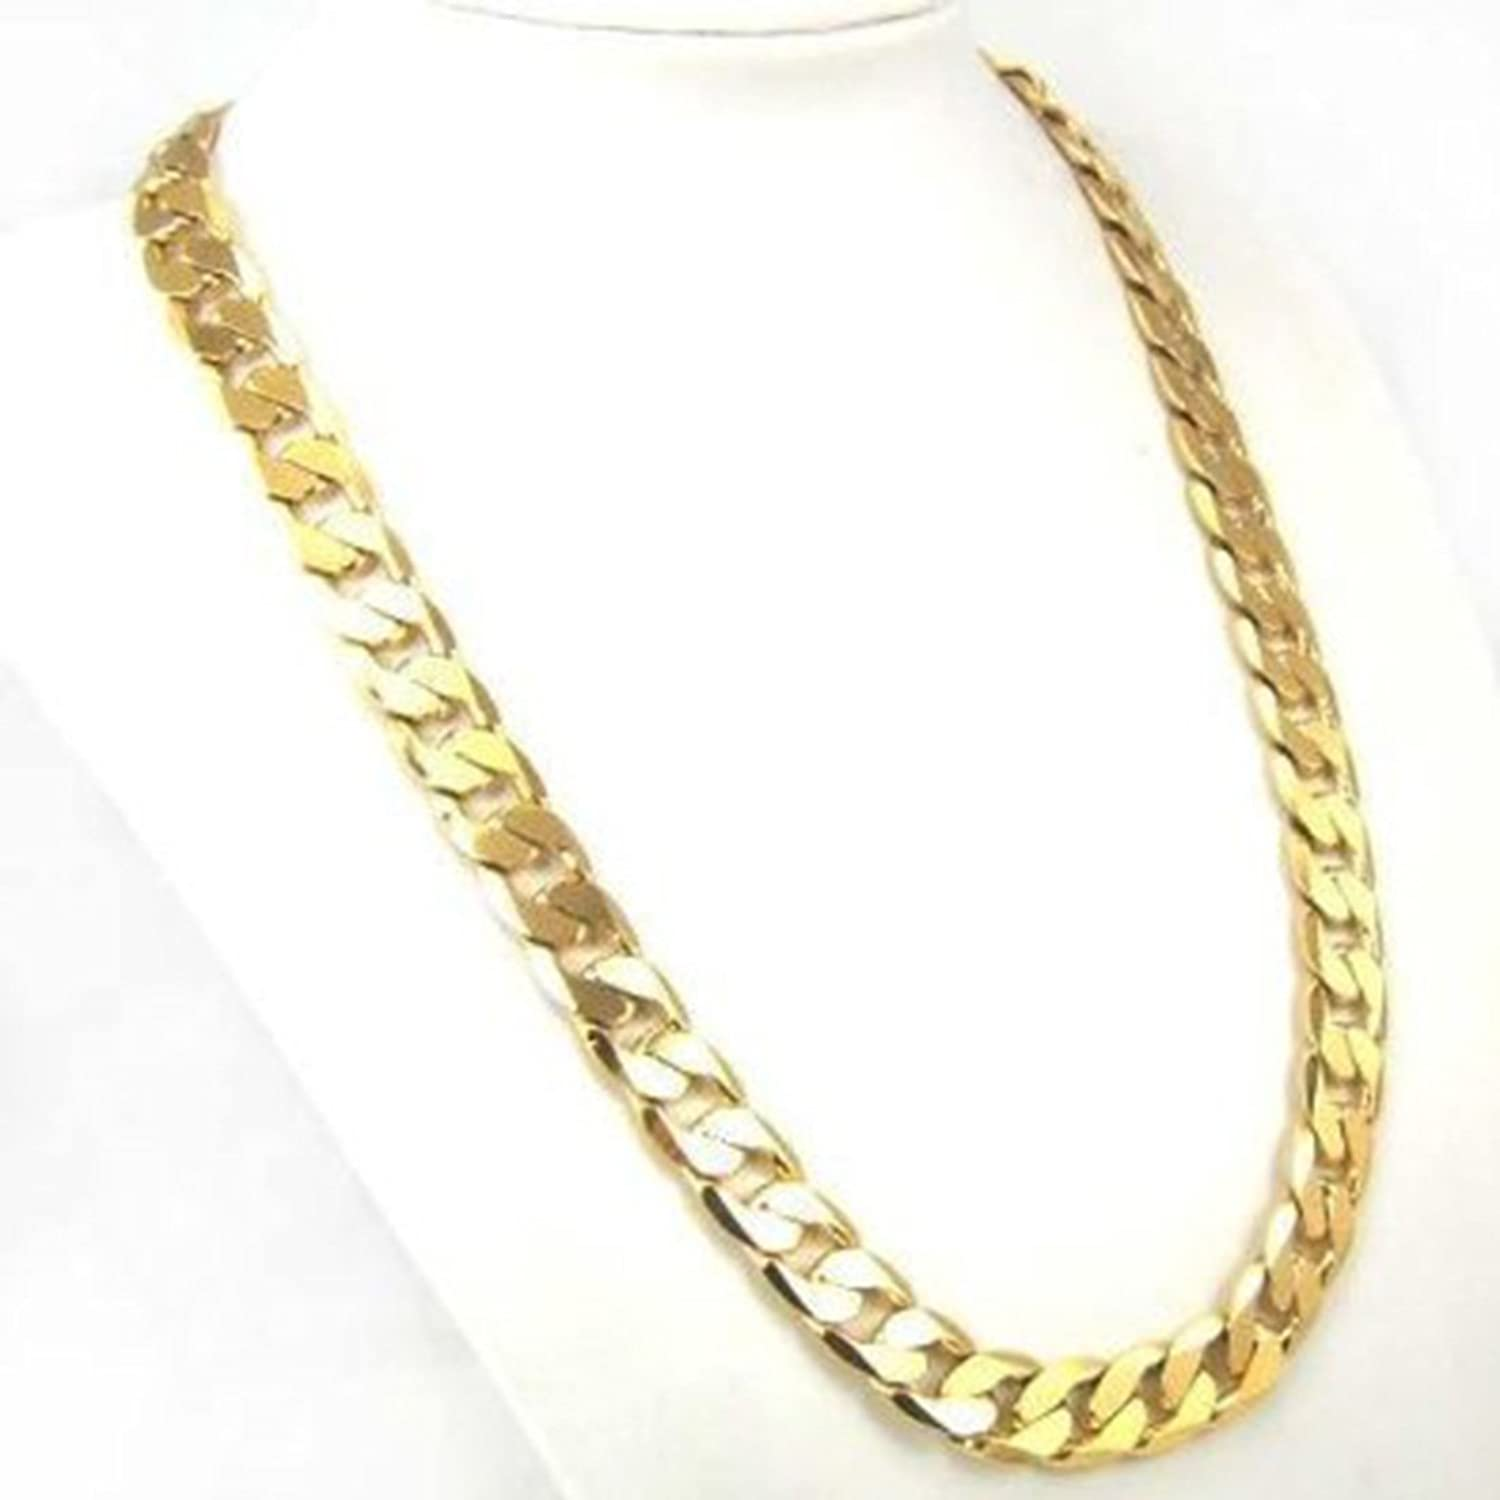 Gold Chain Designs For Men With Price Www Imgkid Com